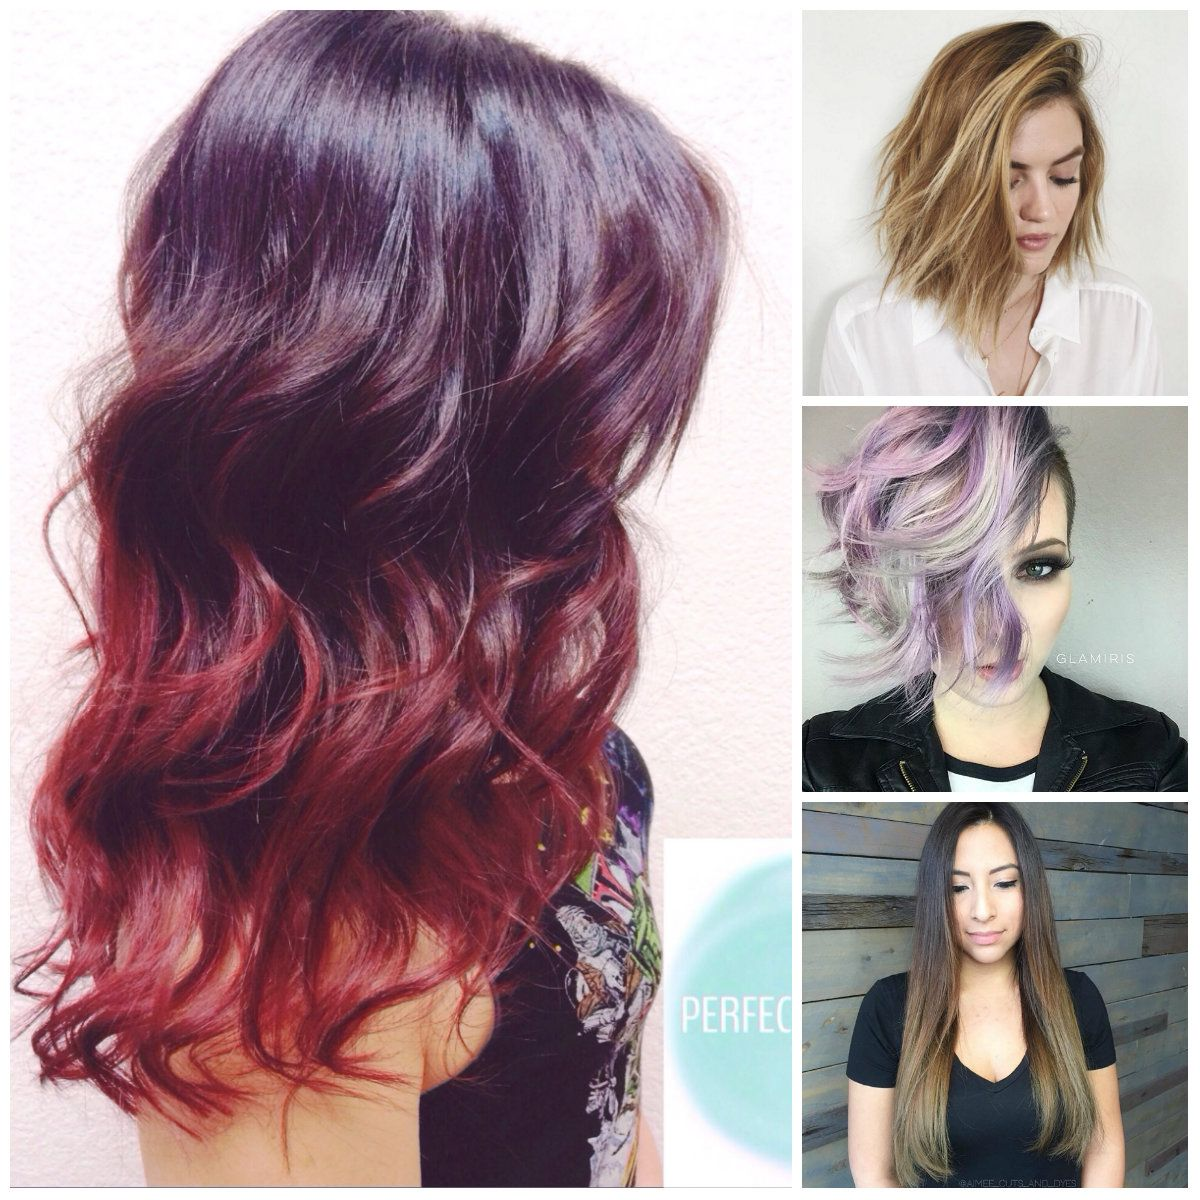 Art color hair - Find This Pin And More On Hair Art